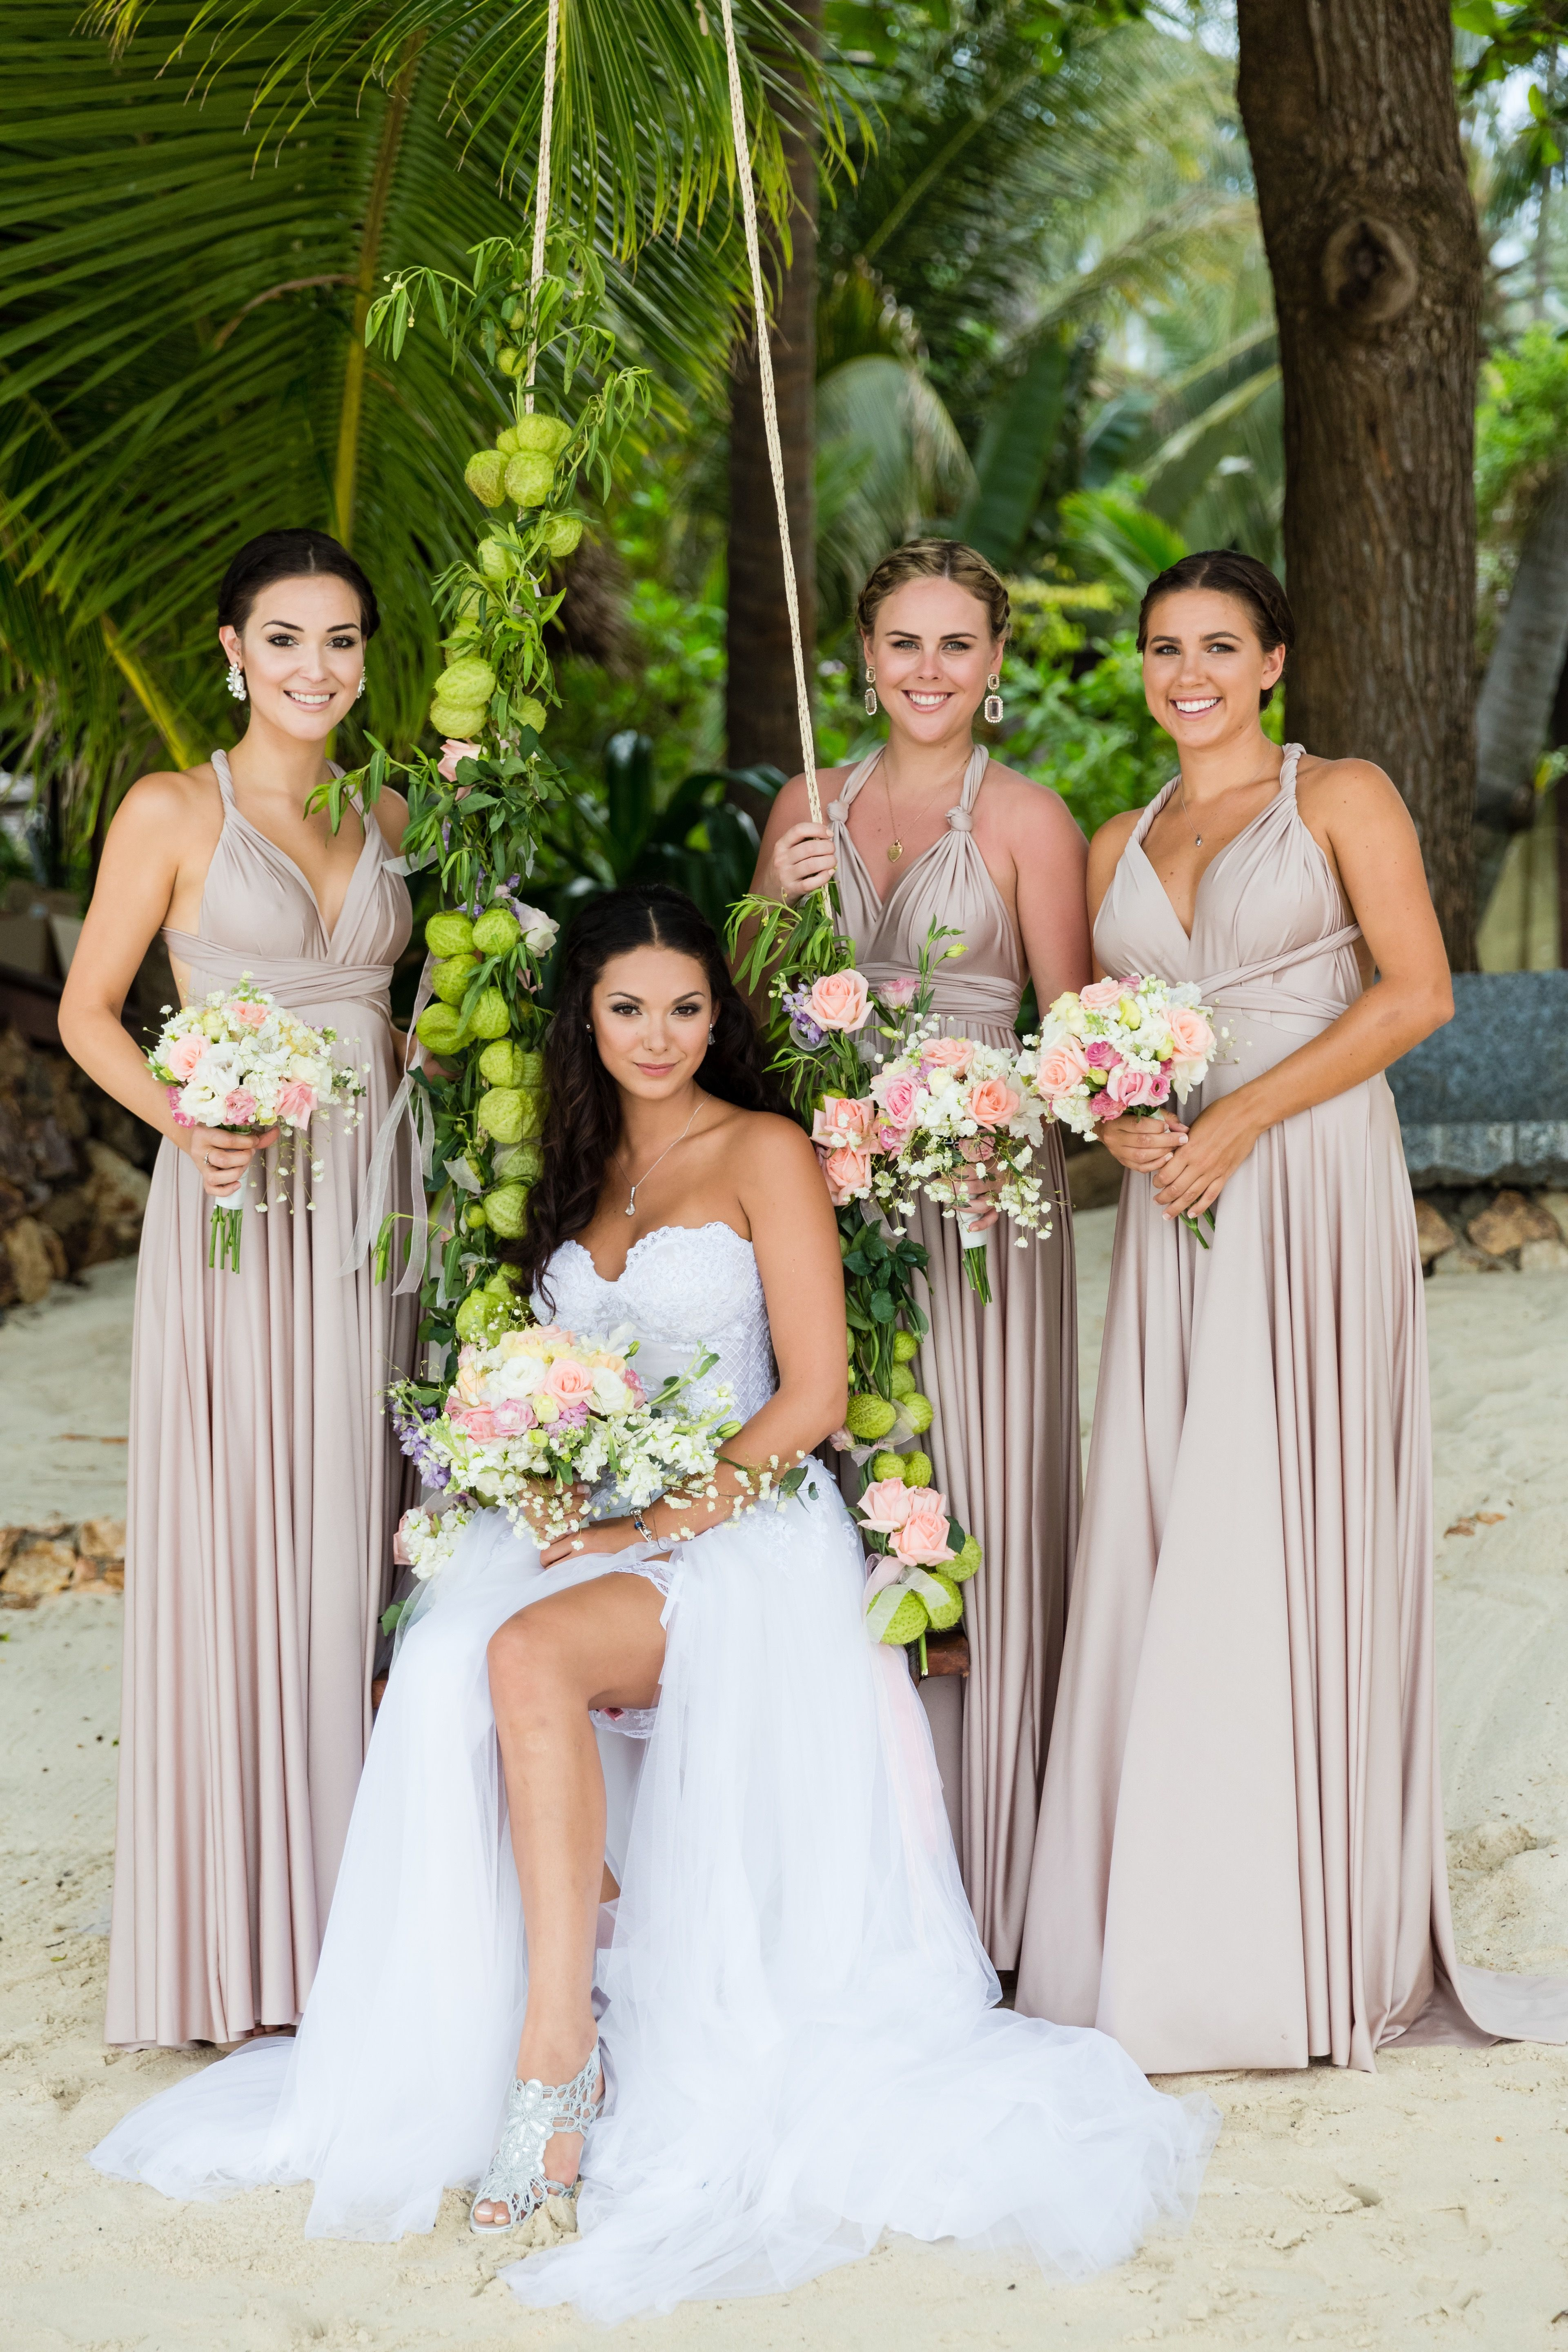 Our flattering signature multiway bridesmaids dresses goddess our flattering signature multiway bridesmaids dresses goddess by nature ombrellifo Choice Image